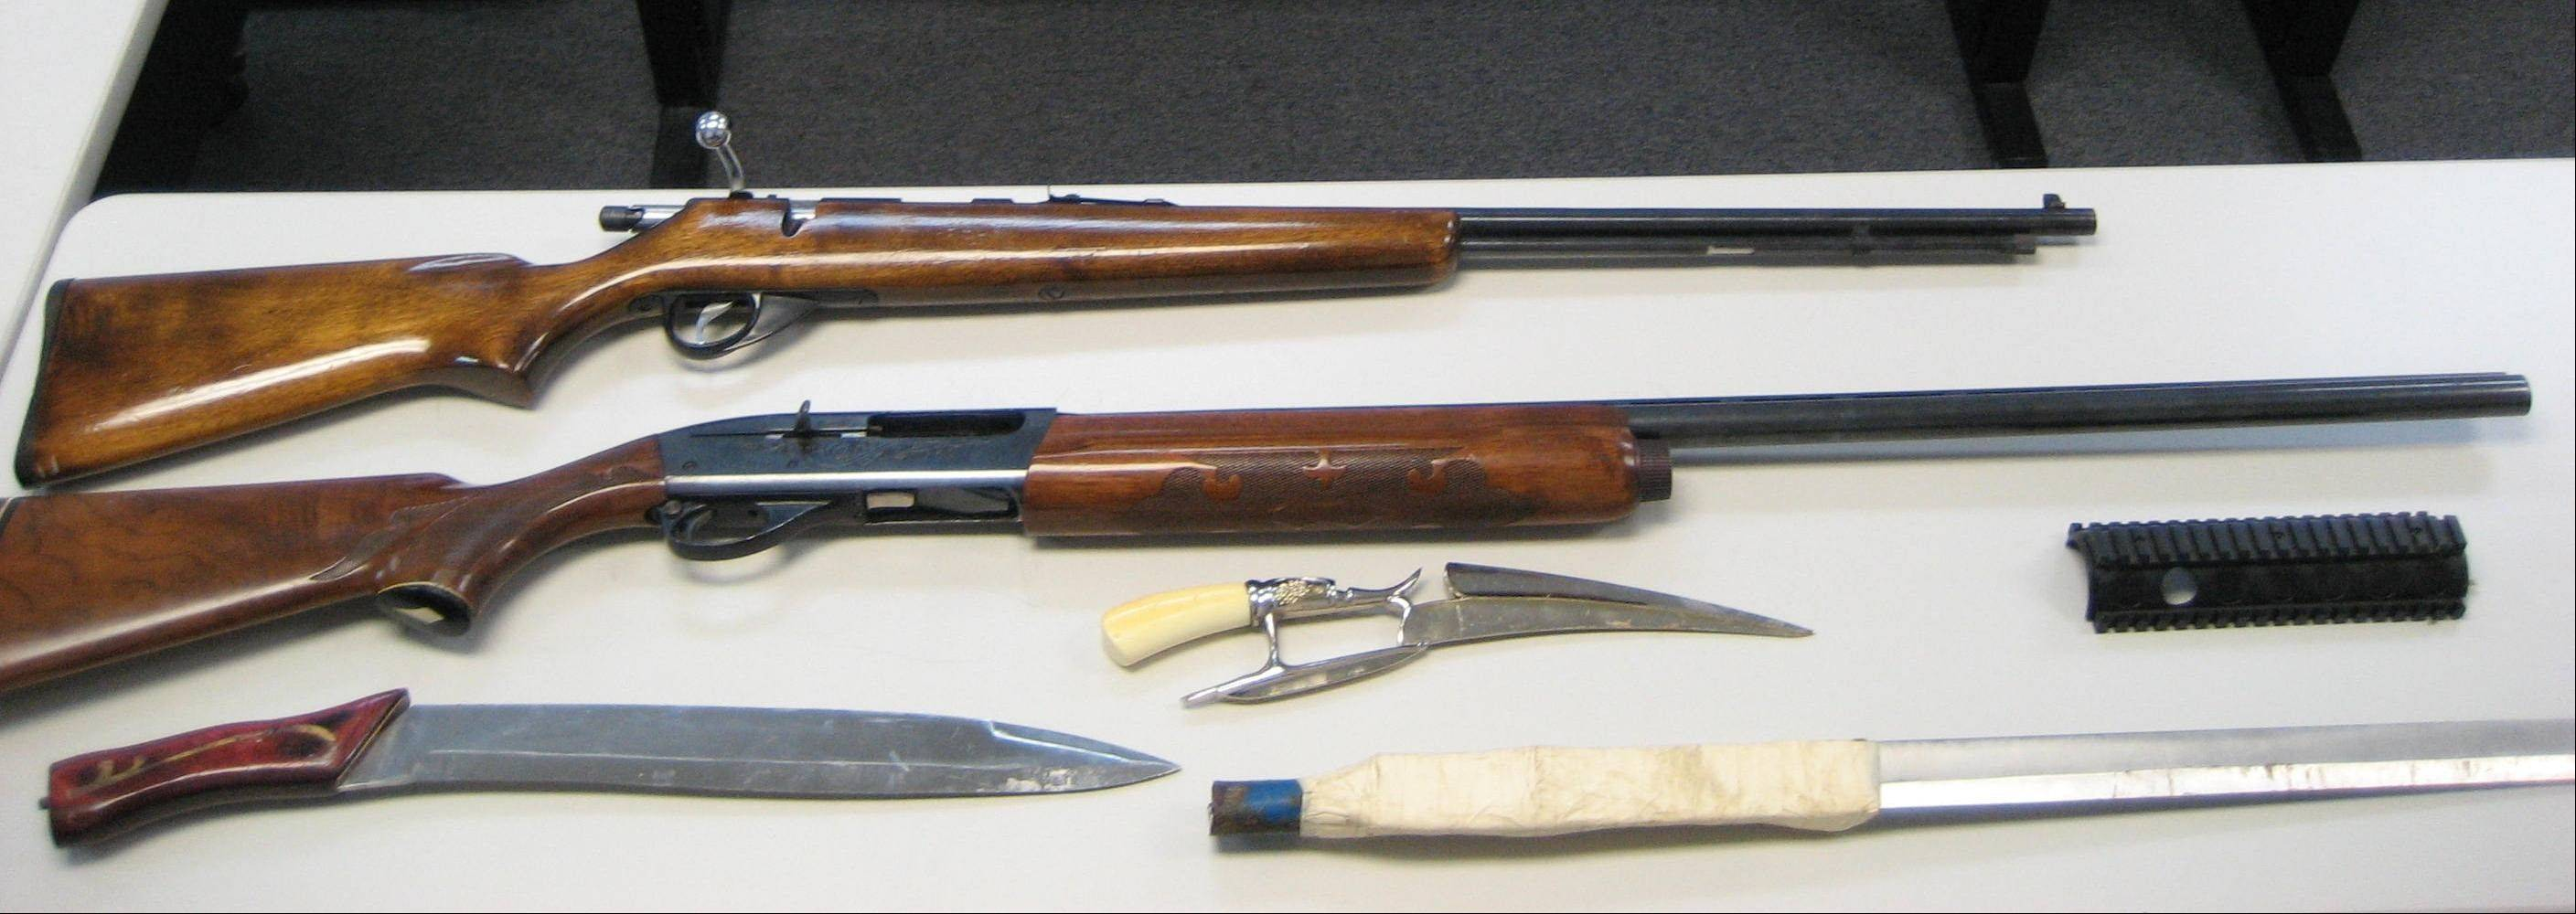 These weapons, including a homemade sword, were seized Tuesday evening by Round Lake Park police and the Department of Homeland Security as part of a joint investigation targeting suspected street gang members in the area.